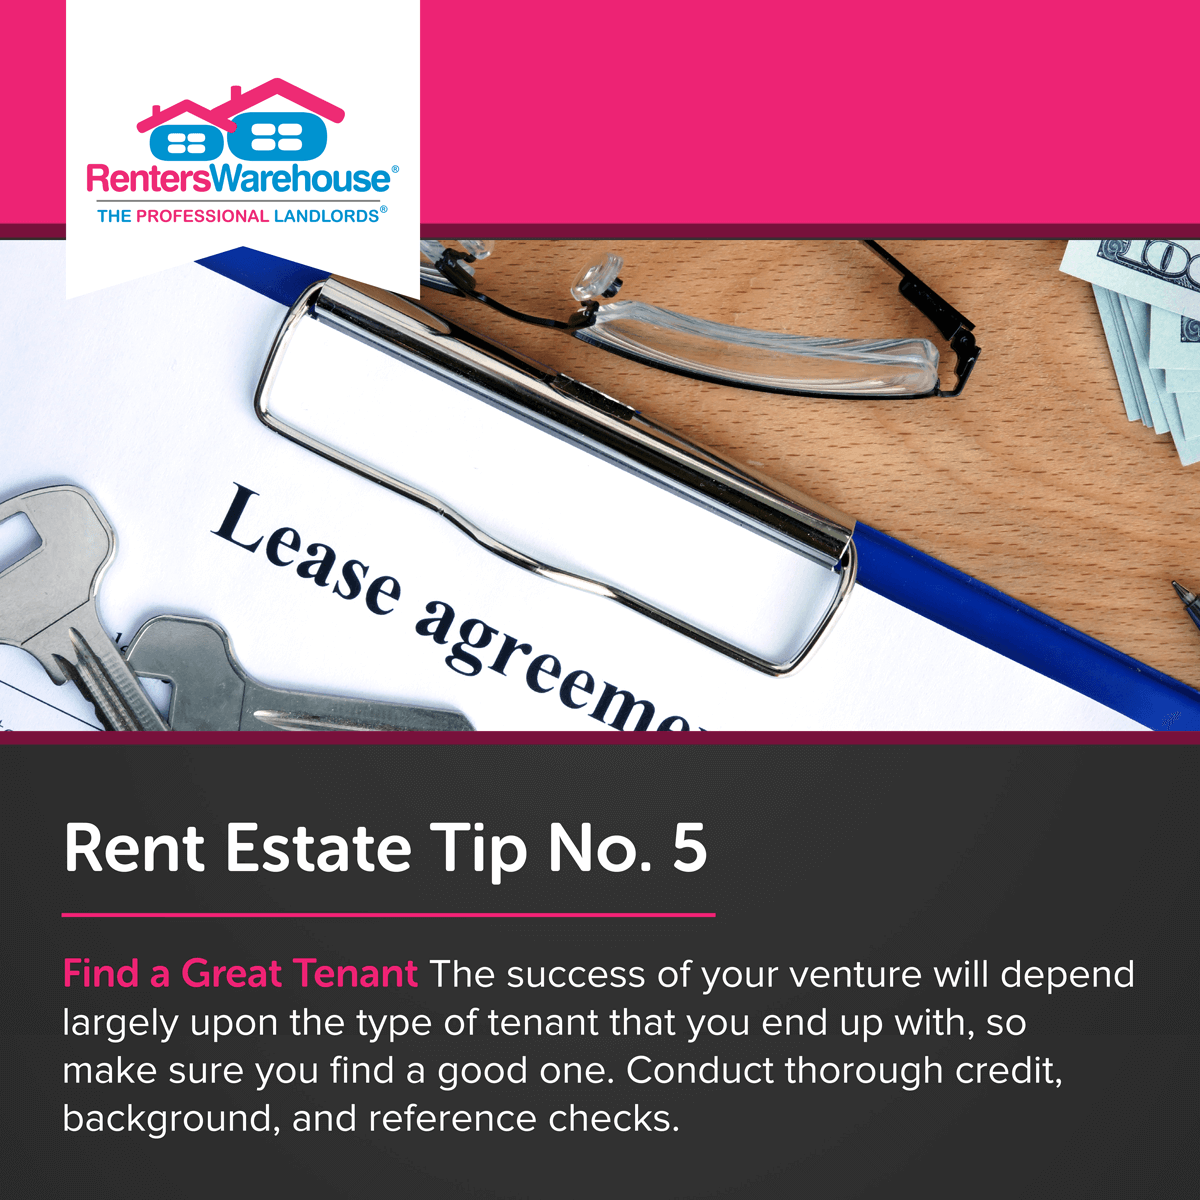 Image related to Rent Estate™ Tip No. 5 - Find a Great Tenant